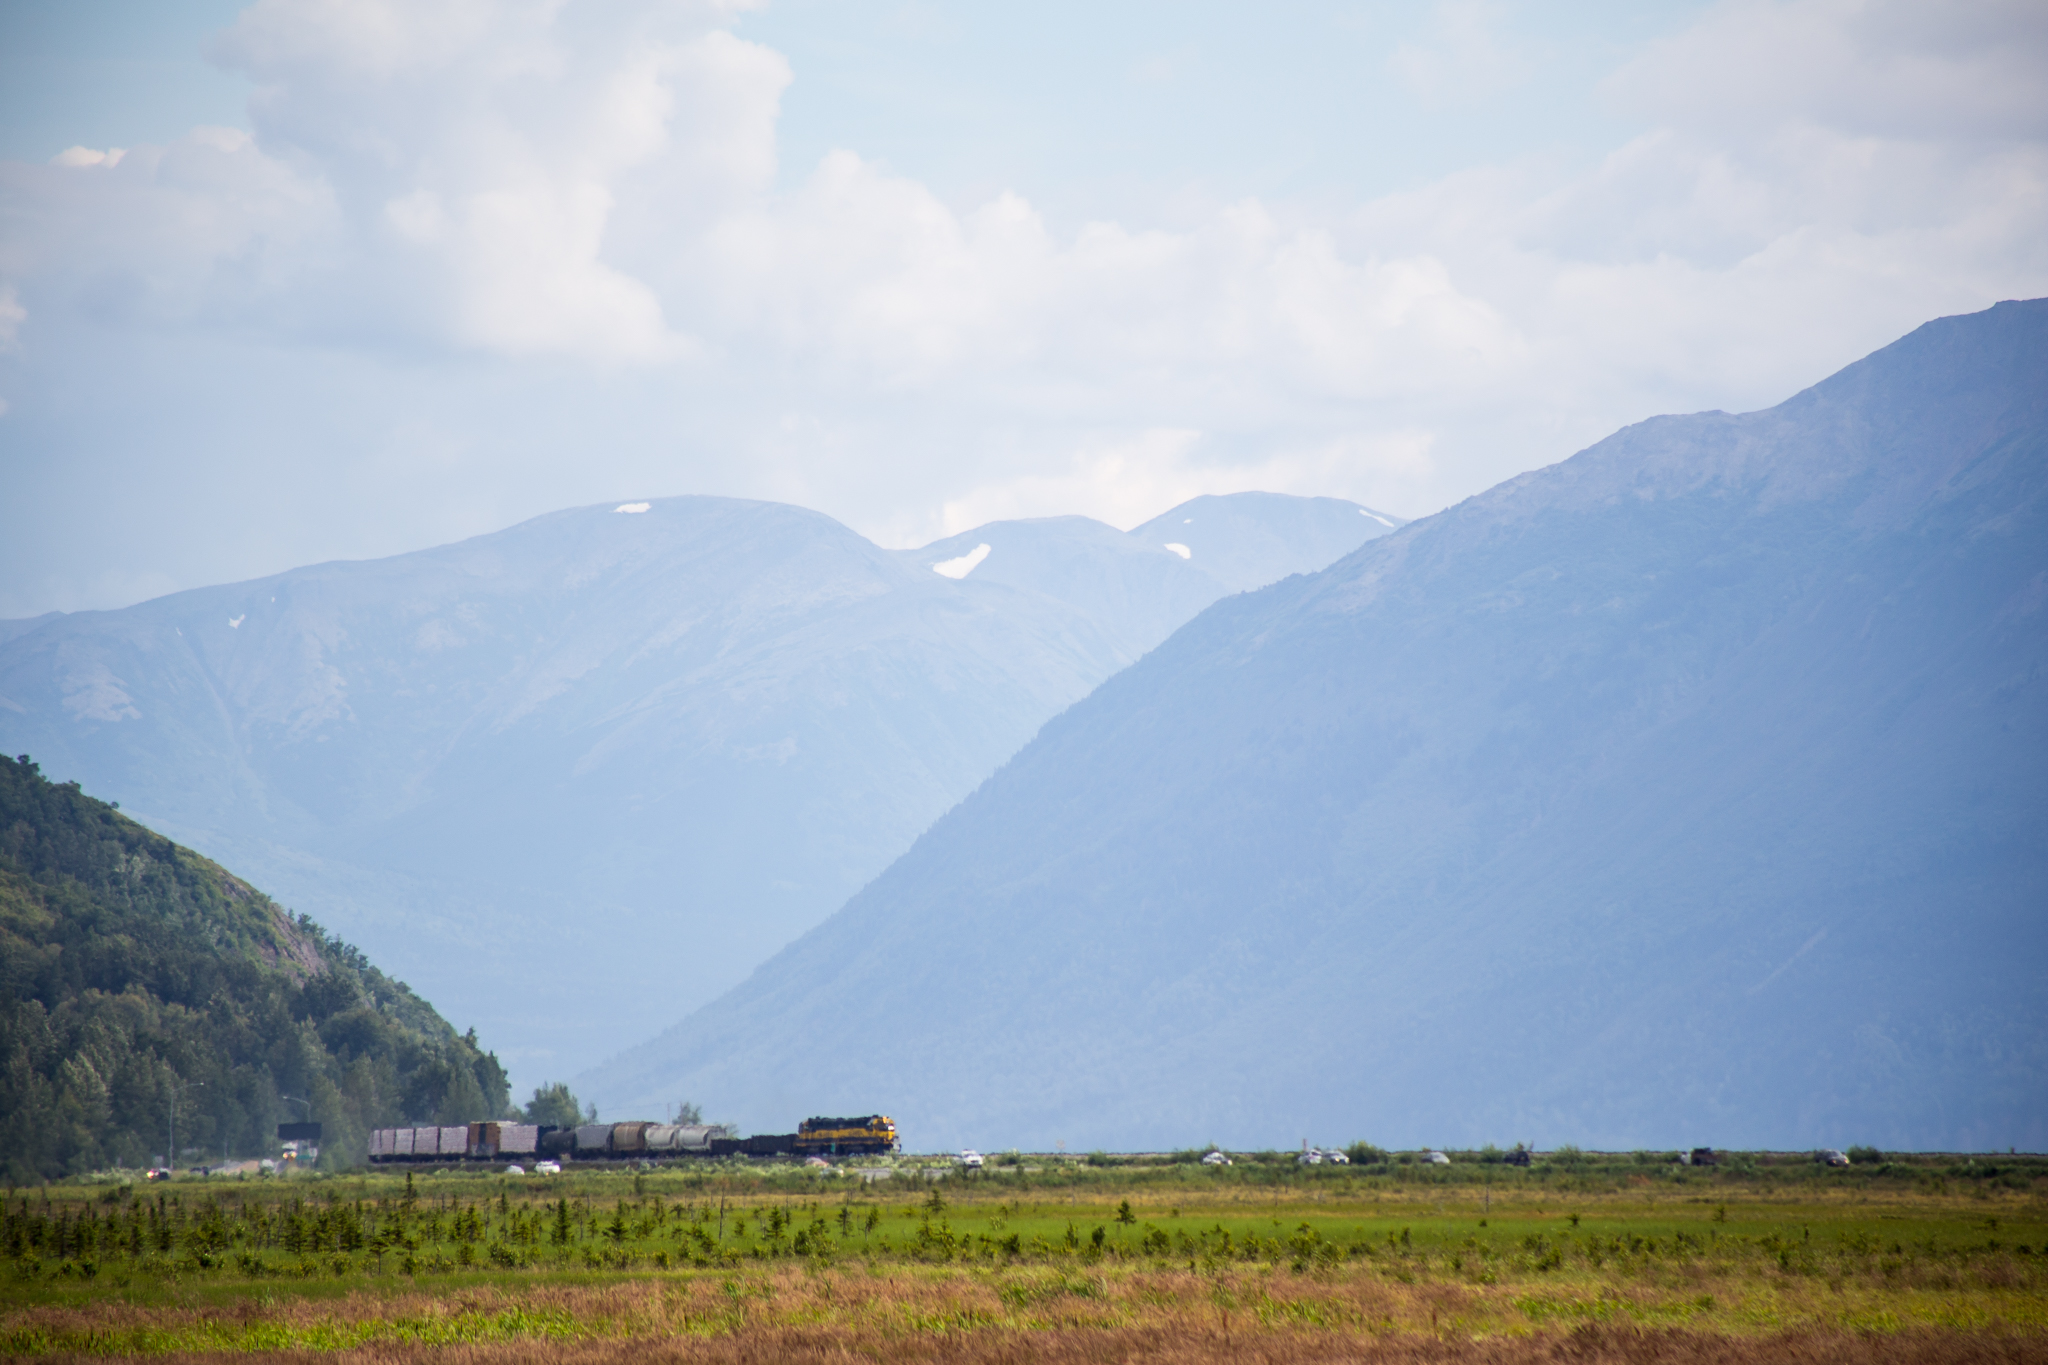 The Alaskan Railroad which sort of runs parallel to the Seward Highway.